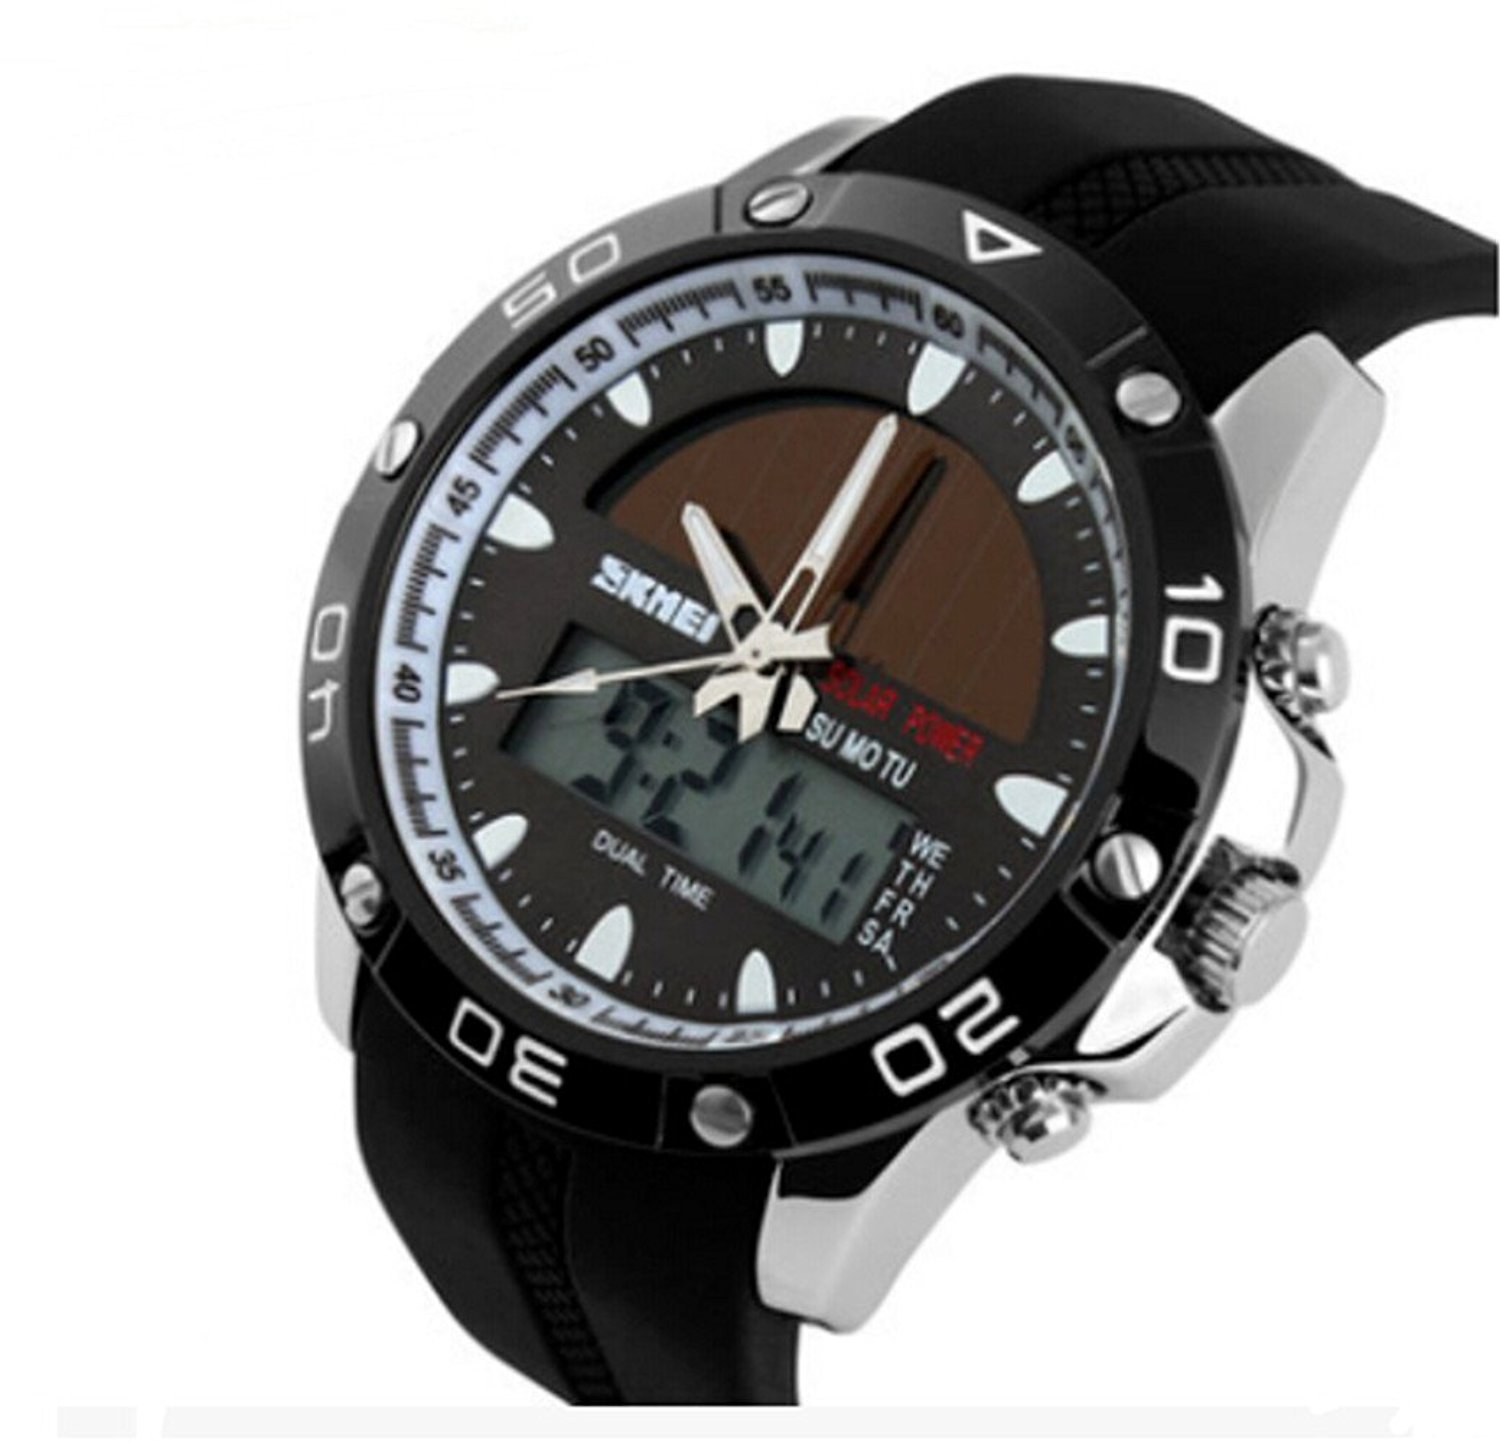 display for watches multifunctional black aw amazon jige quartz d watch com gp powered solar men power sports